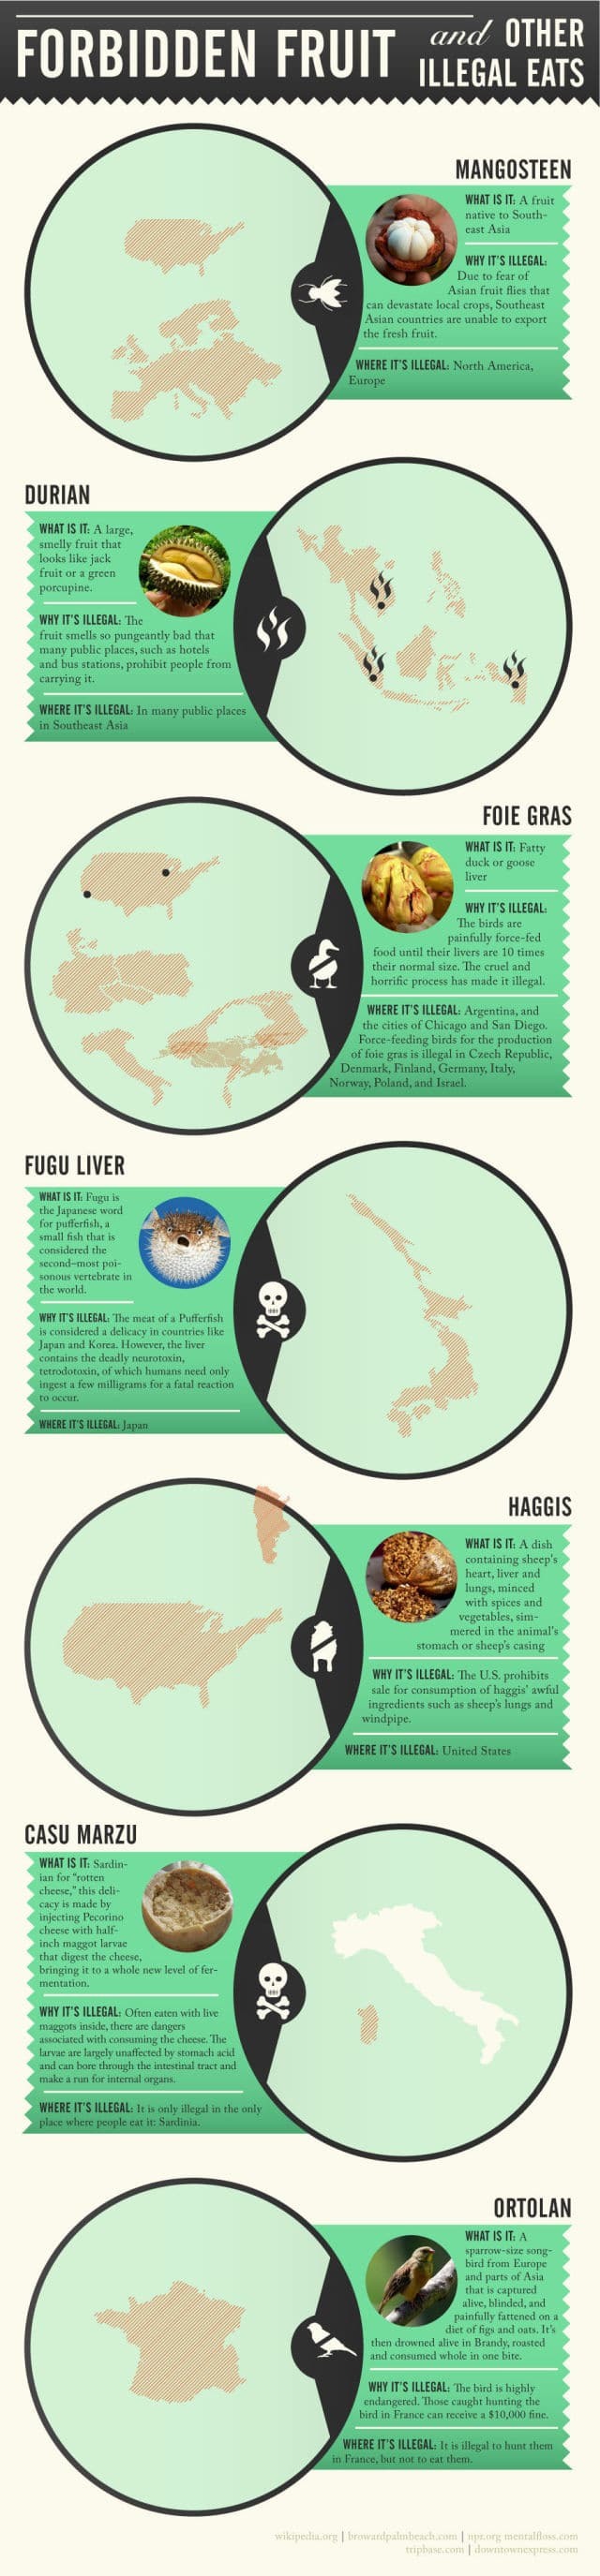 Dangerous fruits around the world